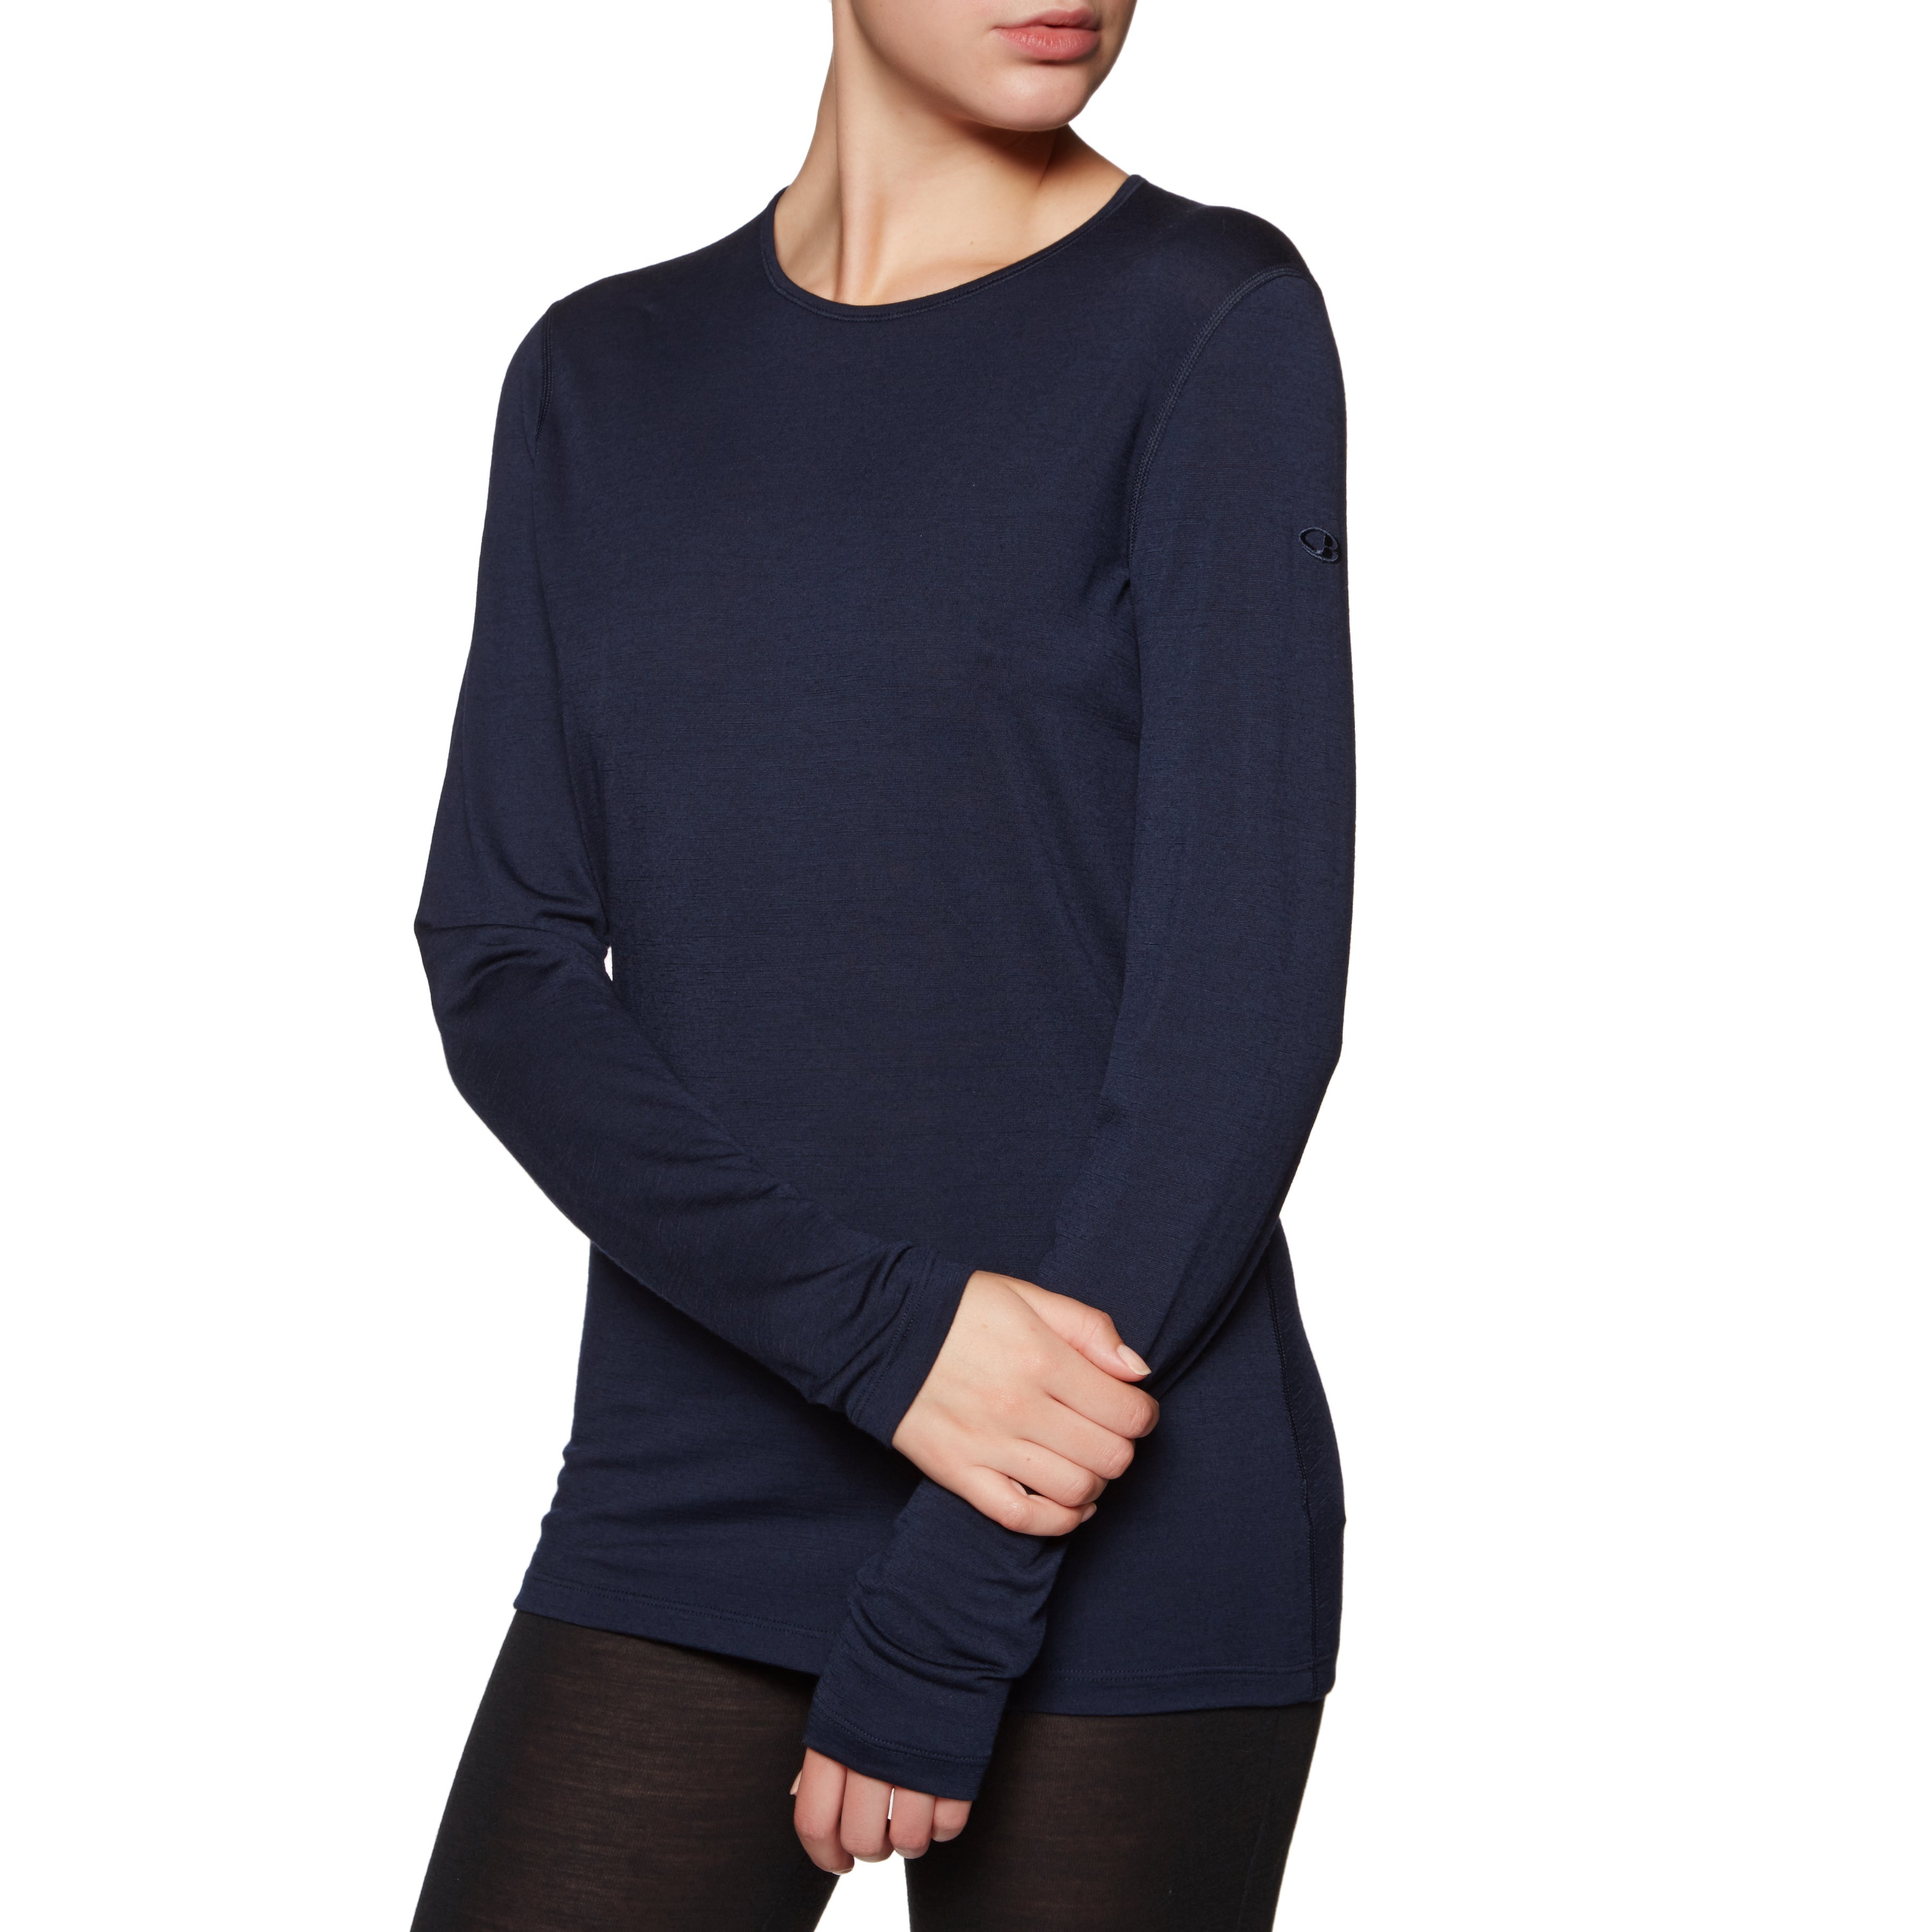 Icebreaker 200 Oasis Long Sleeve Crewe Womens Base Layer Top - Midnight Navy